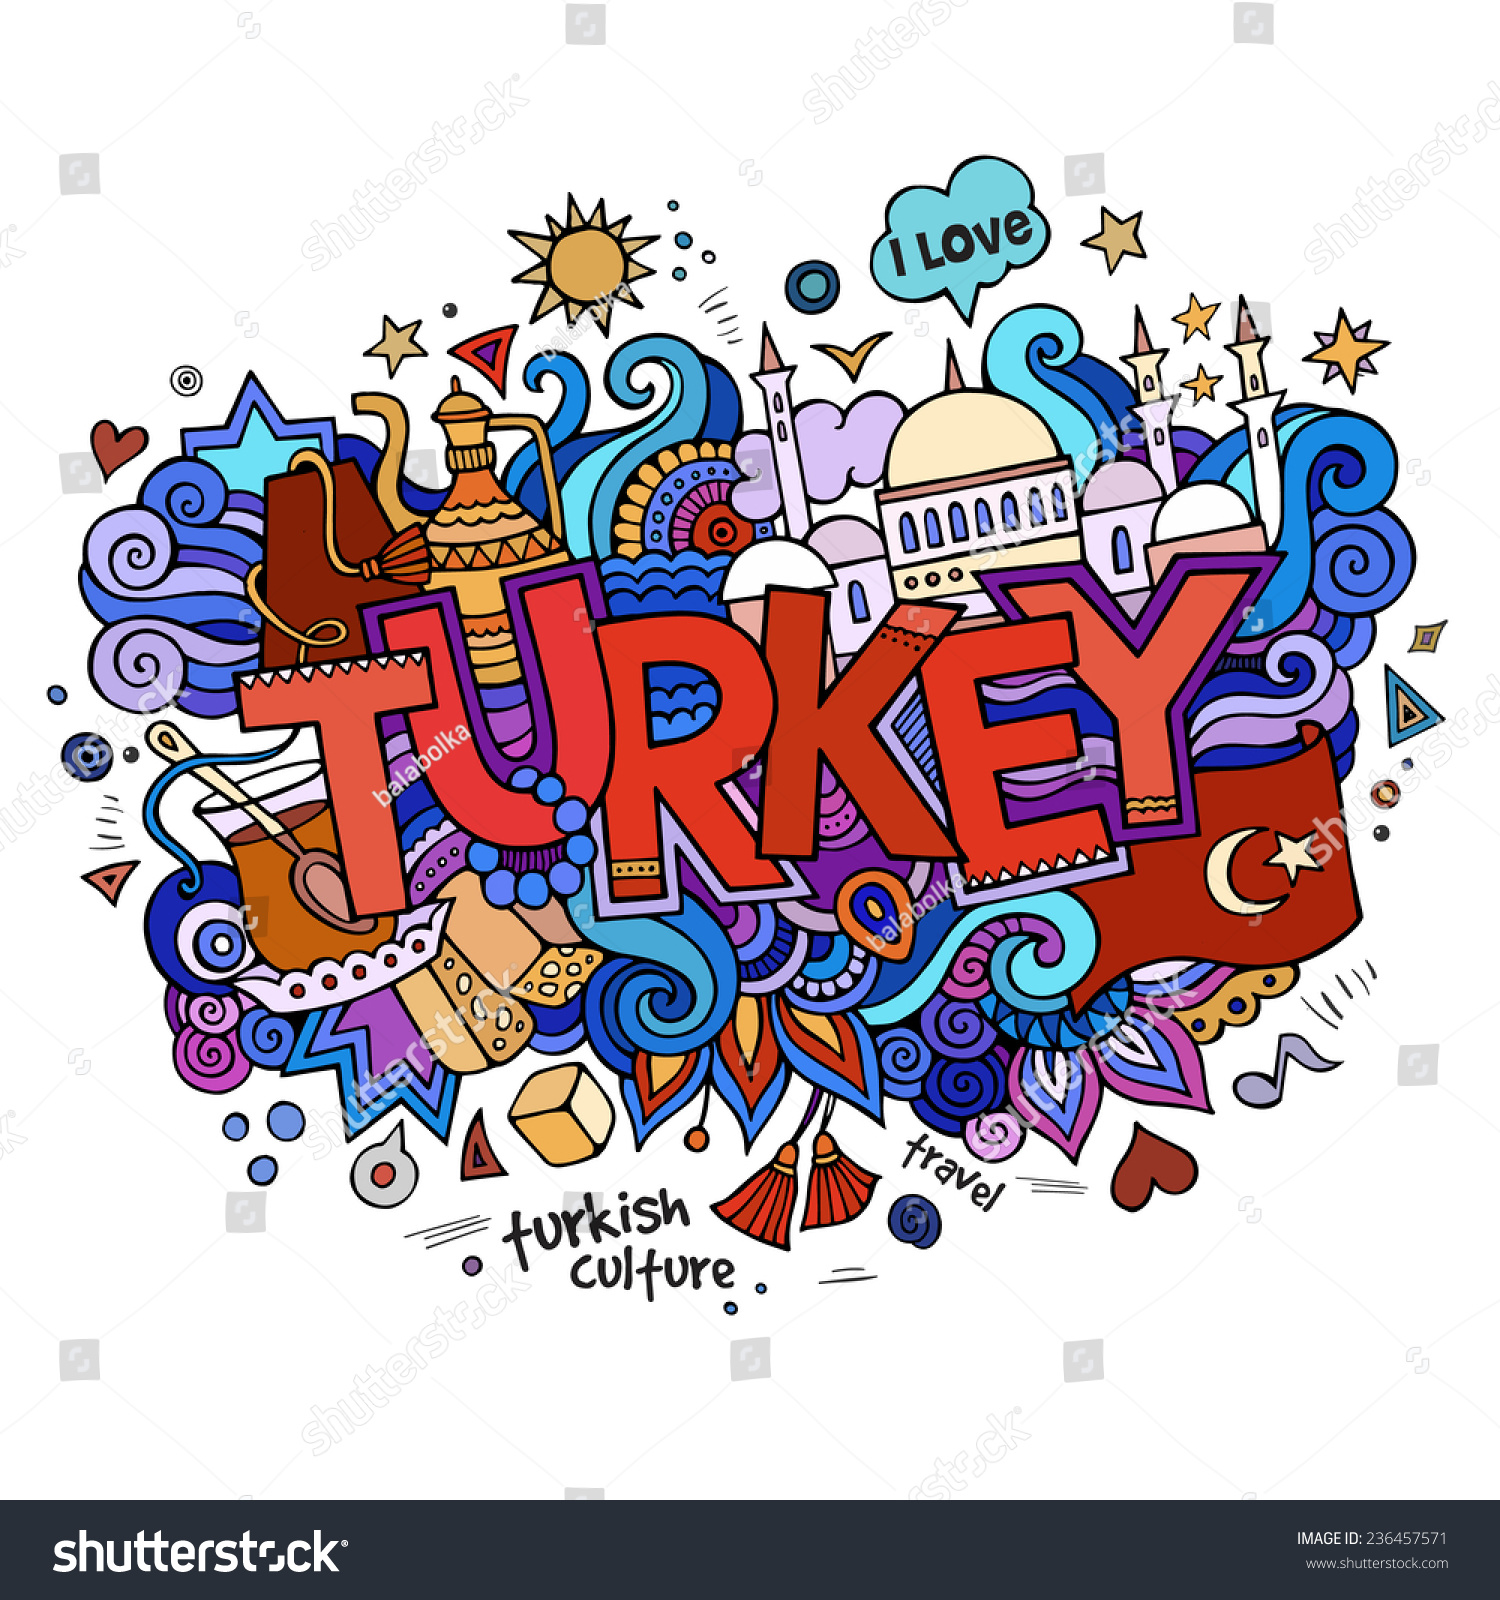 Stock vector music hand lettering and doodles elements - Turkey Hand Lettering And Doodles Elements Background Vector Illustration